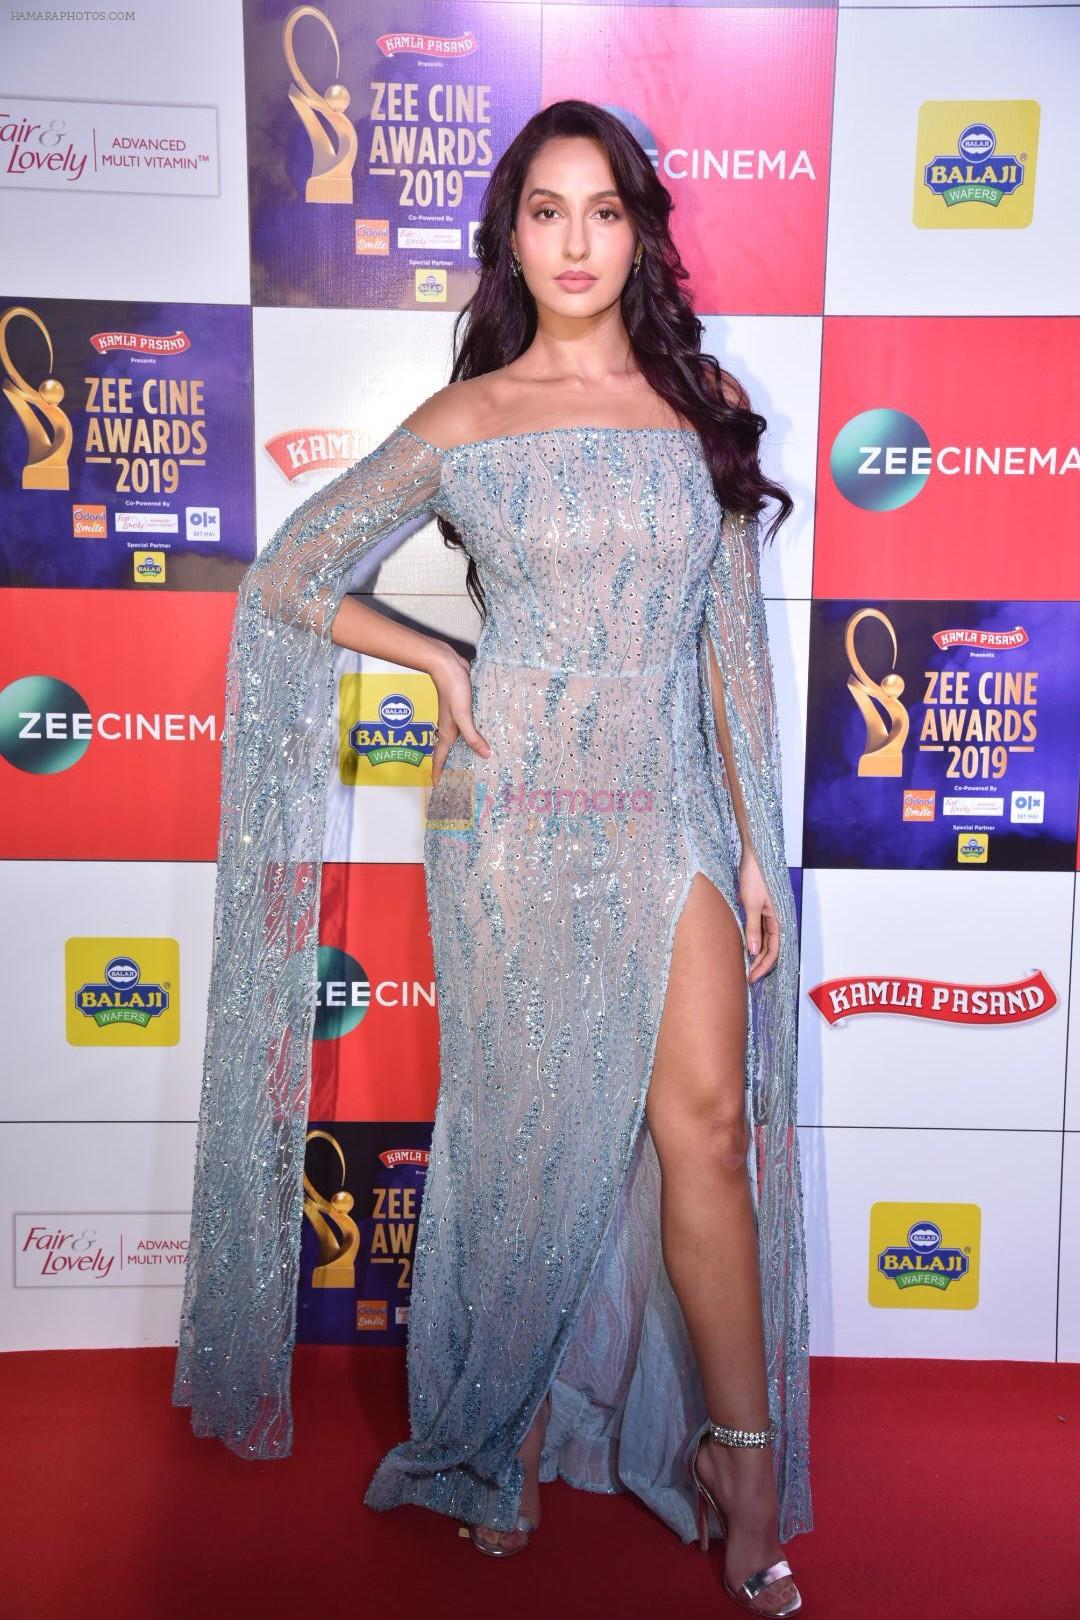 Nora Fatehi at Zee cine awards red carpet on 19th March 2019